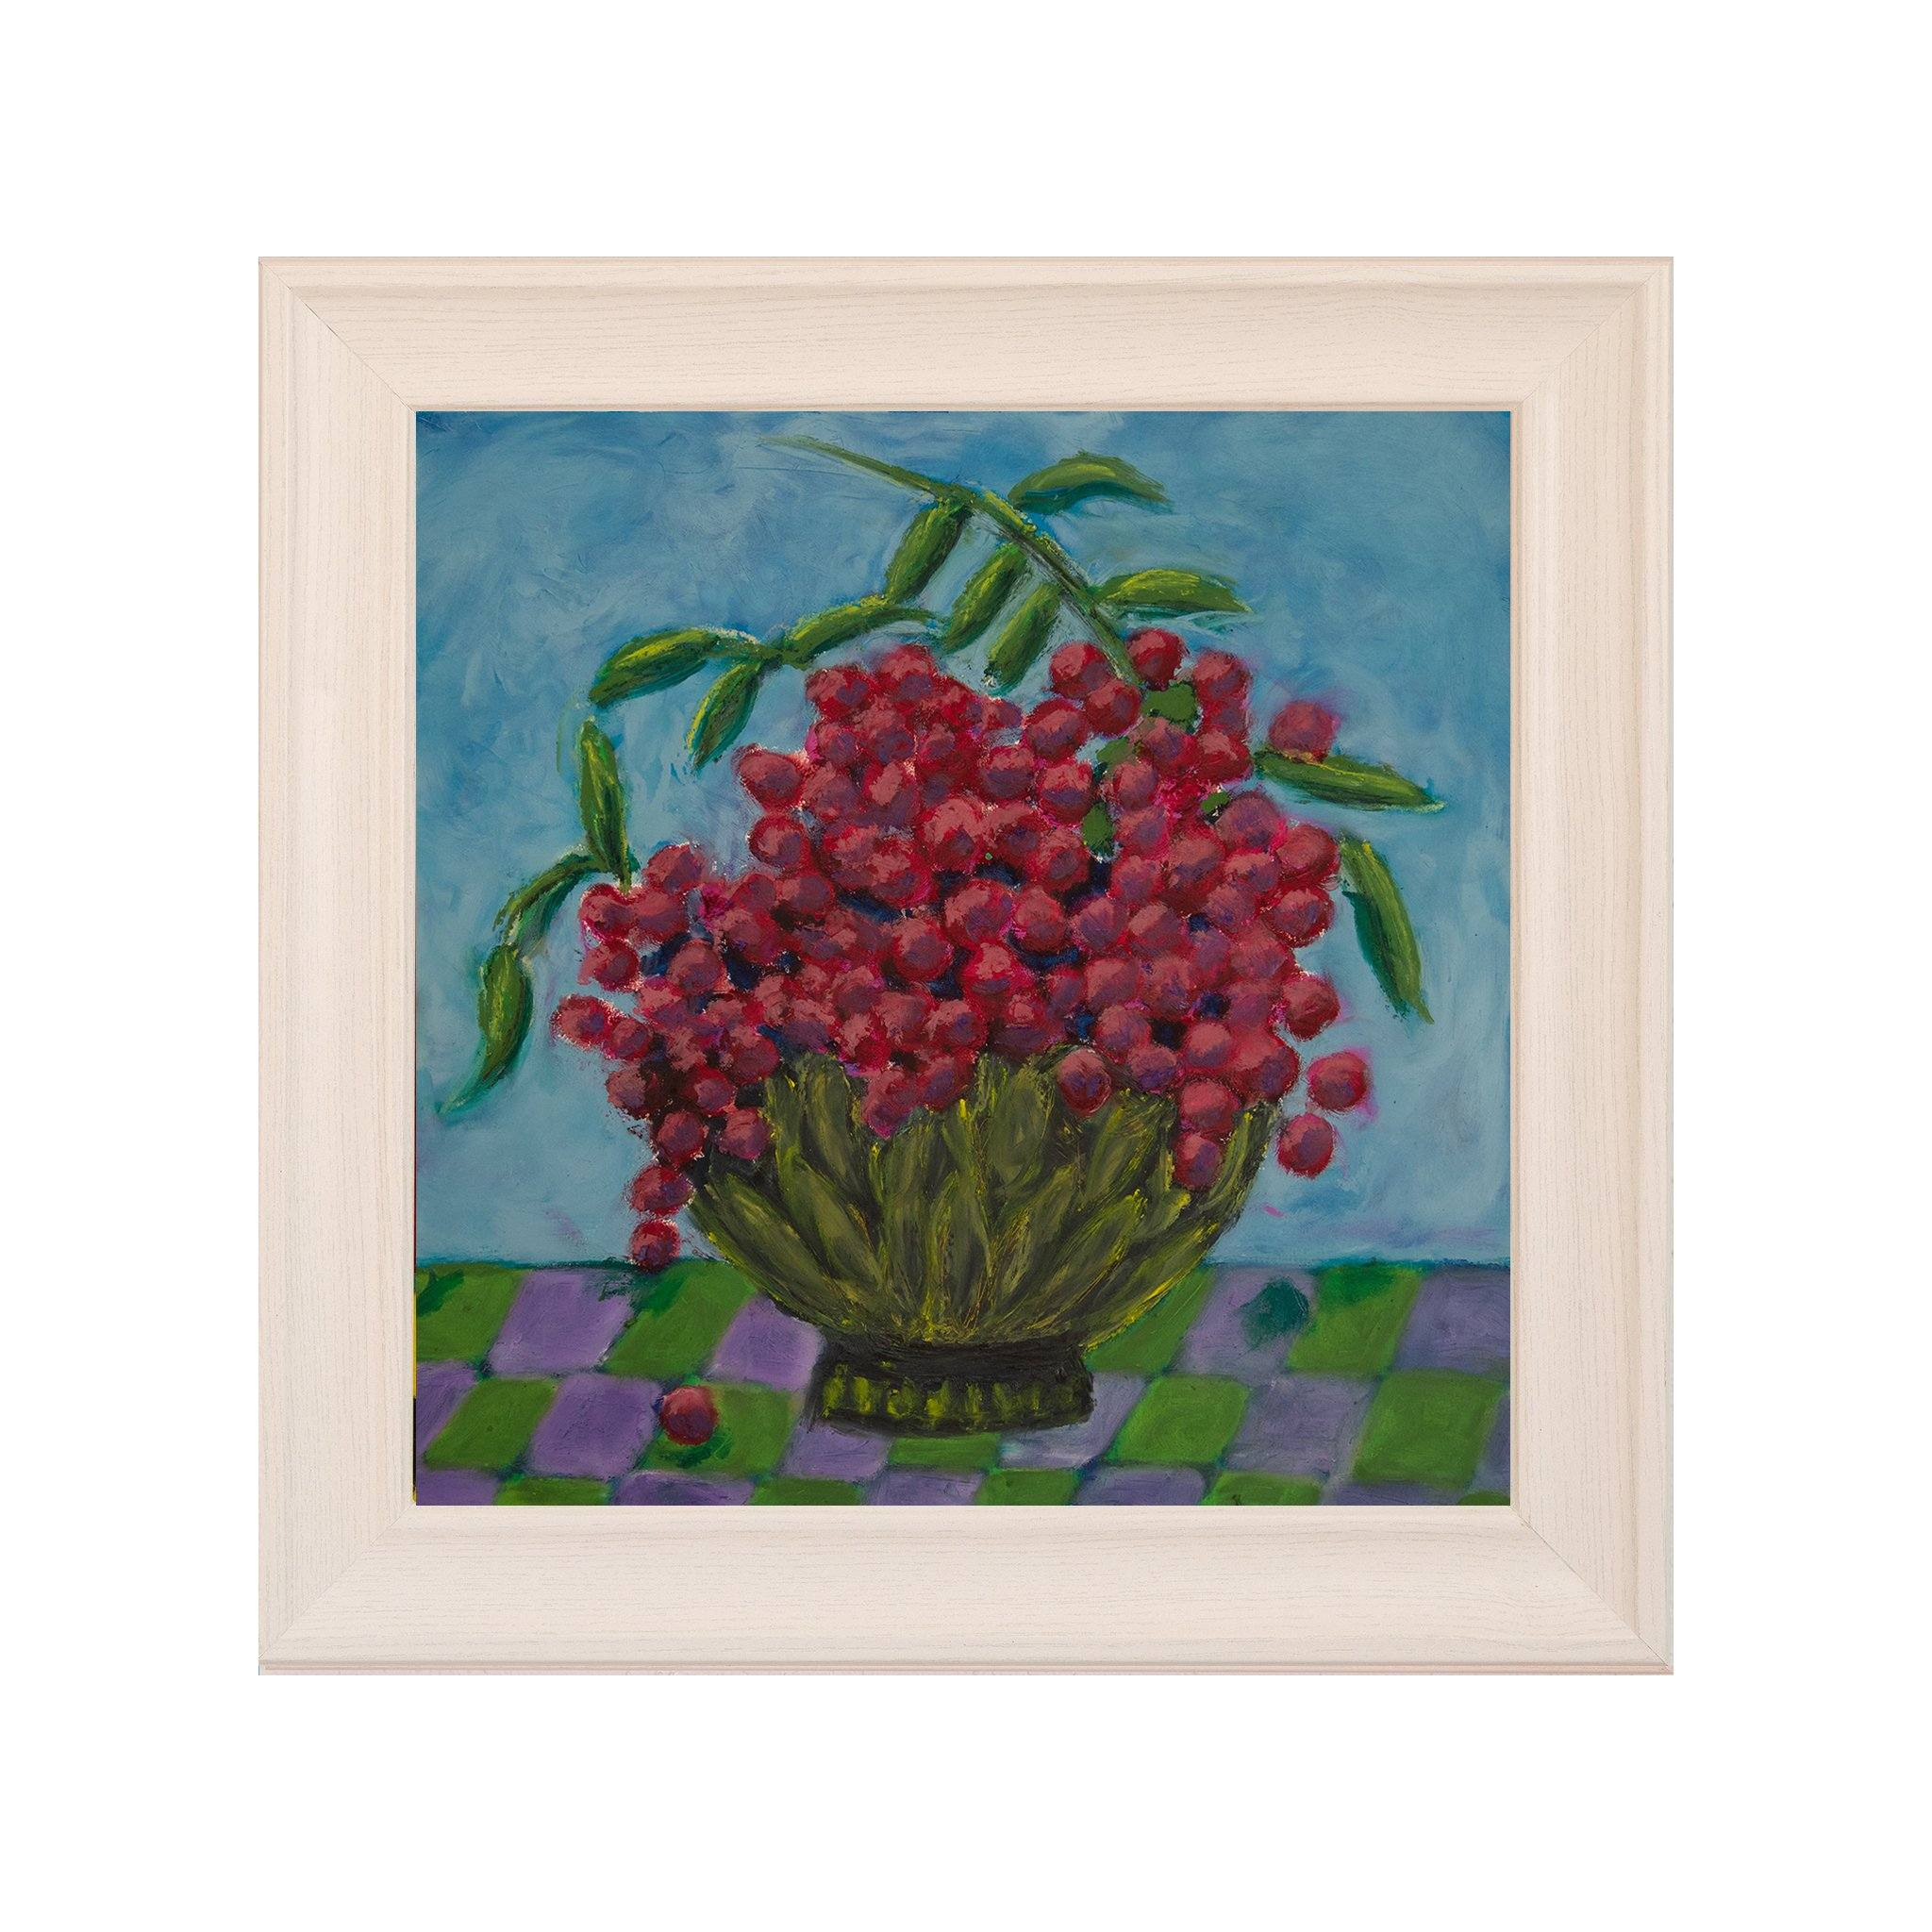 "Bowl Full of Grapes, Oil Painting (14""x14"") - Norlynne Coar Fine Art"